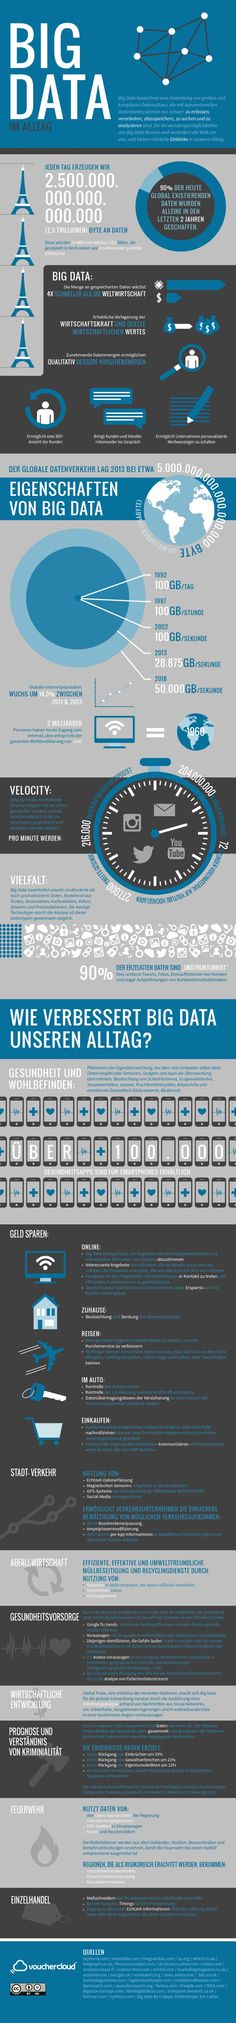 Big Data in everyday life